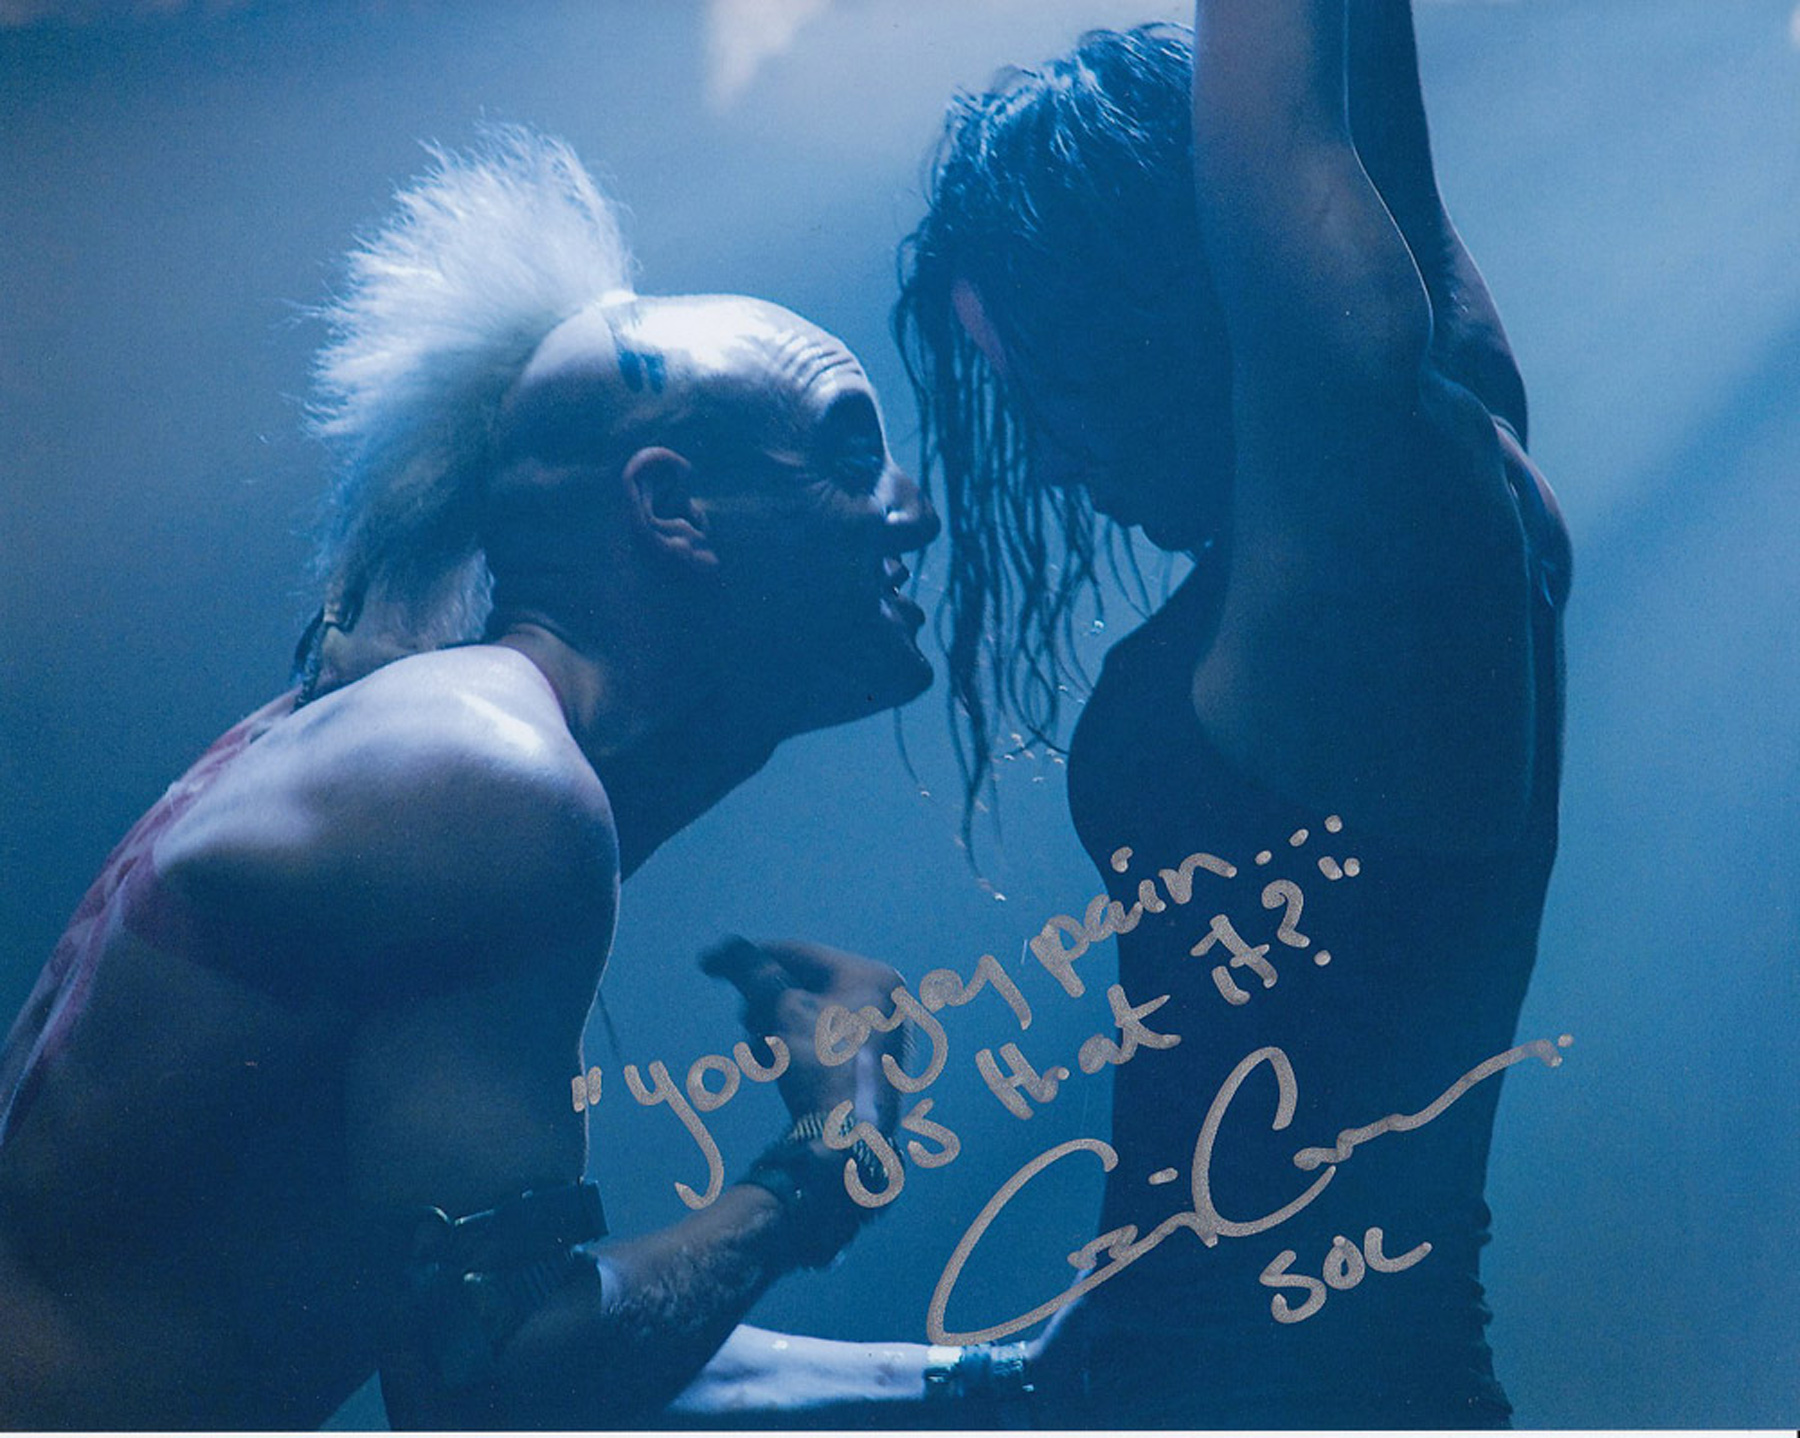 Blowout Sale! Doomsday Craig Conway hand signed 10x8 photo. This beautiful 10x8 hand signed photo